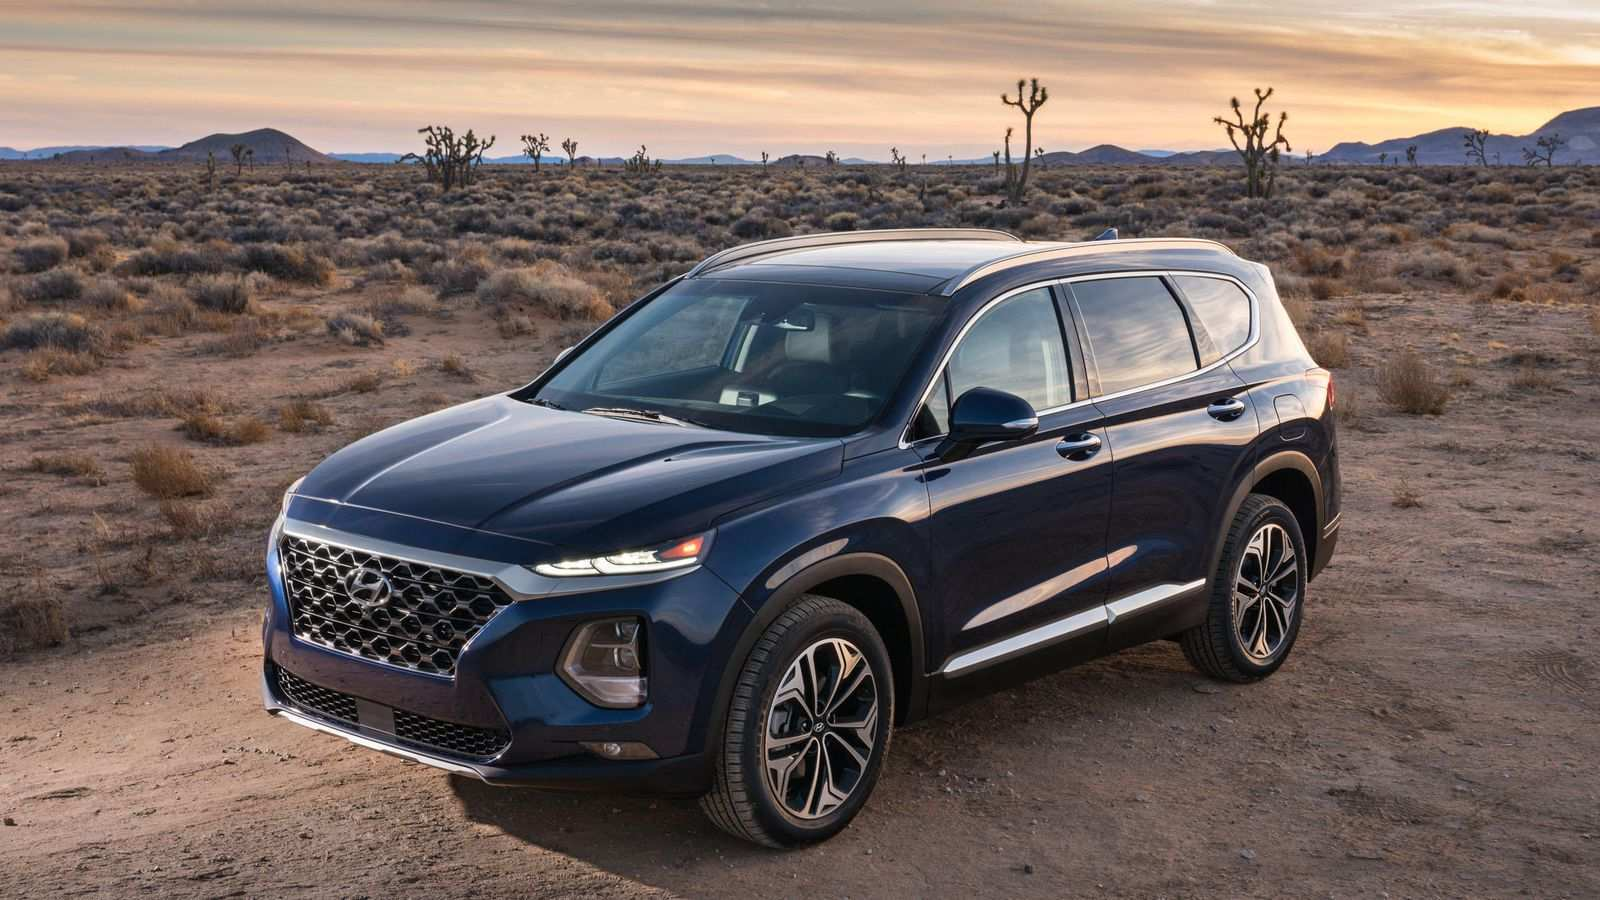 53 Great Hyundai New 2019 Picture by Hyundai New 2019